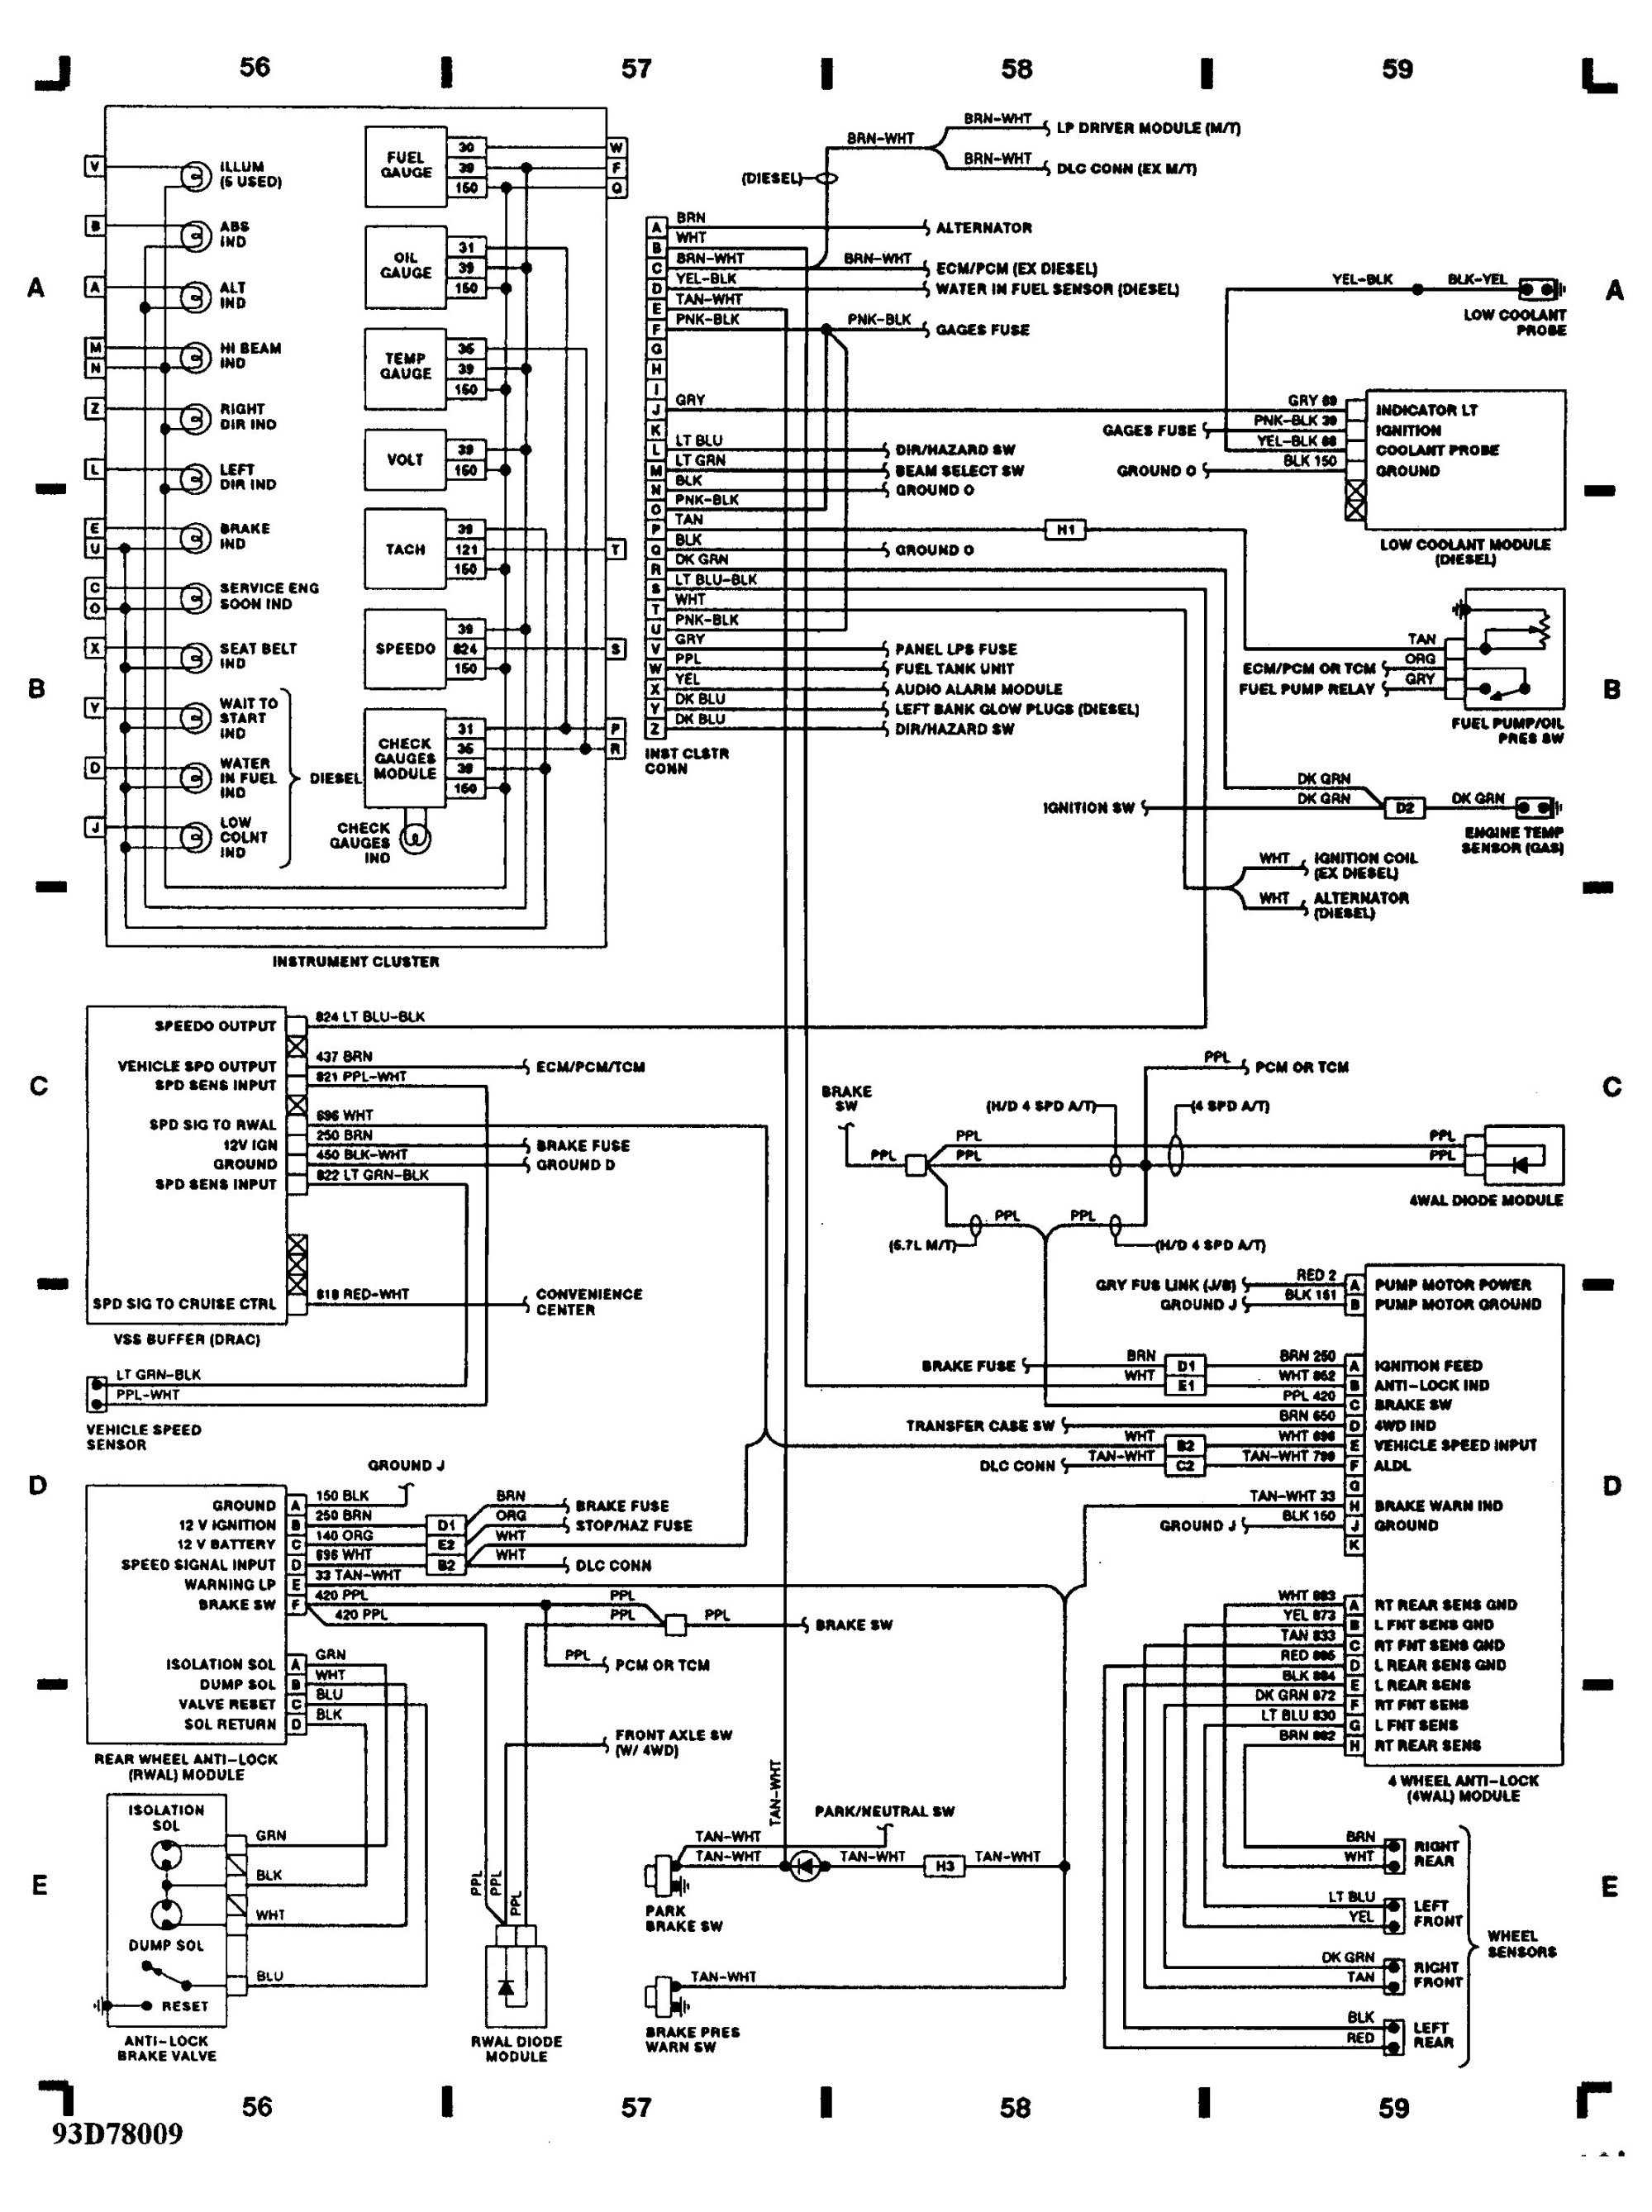 hight resolution of  f150 5 4 engine diagram chevy 5 7 engine diagram wiring diagram schemagm 5 7 engine diagram wiring diagram post chevy